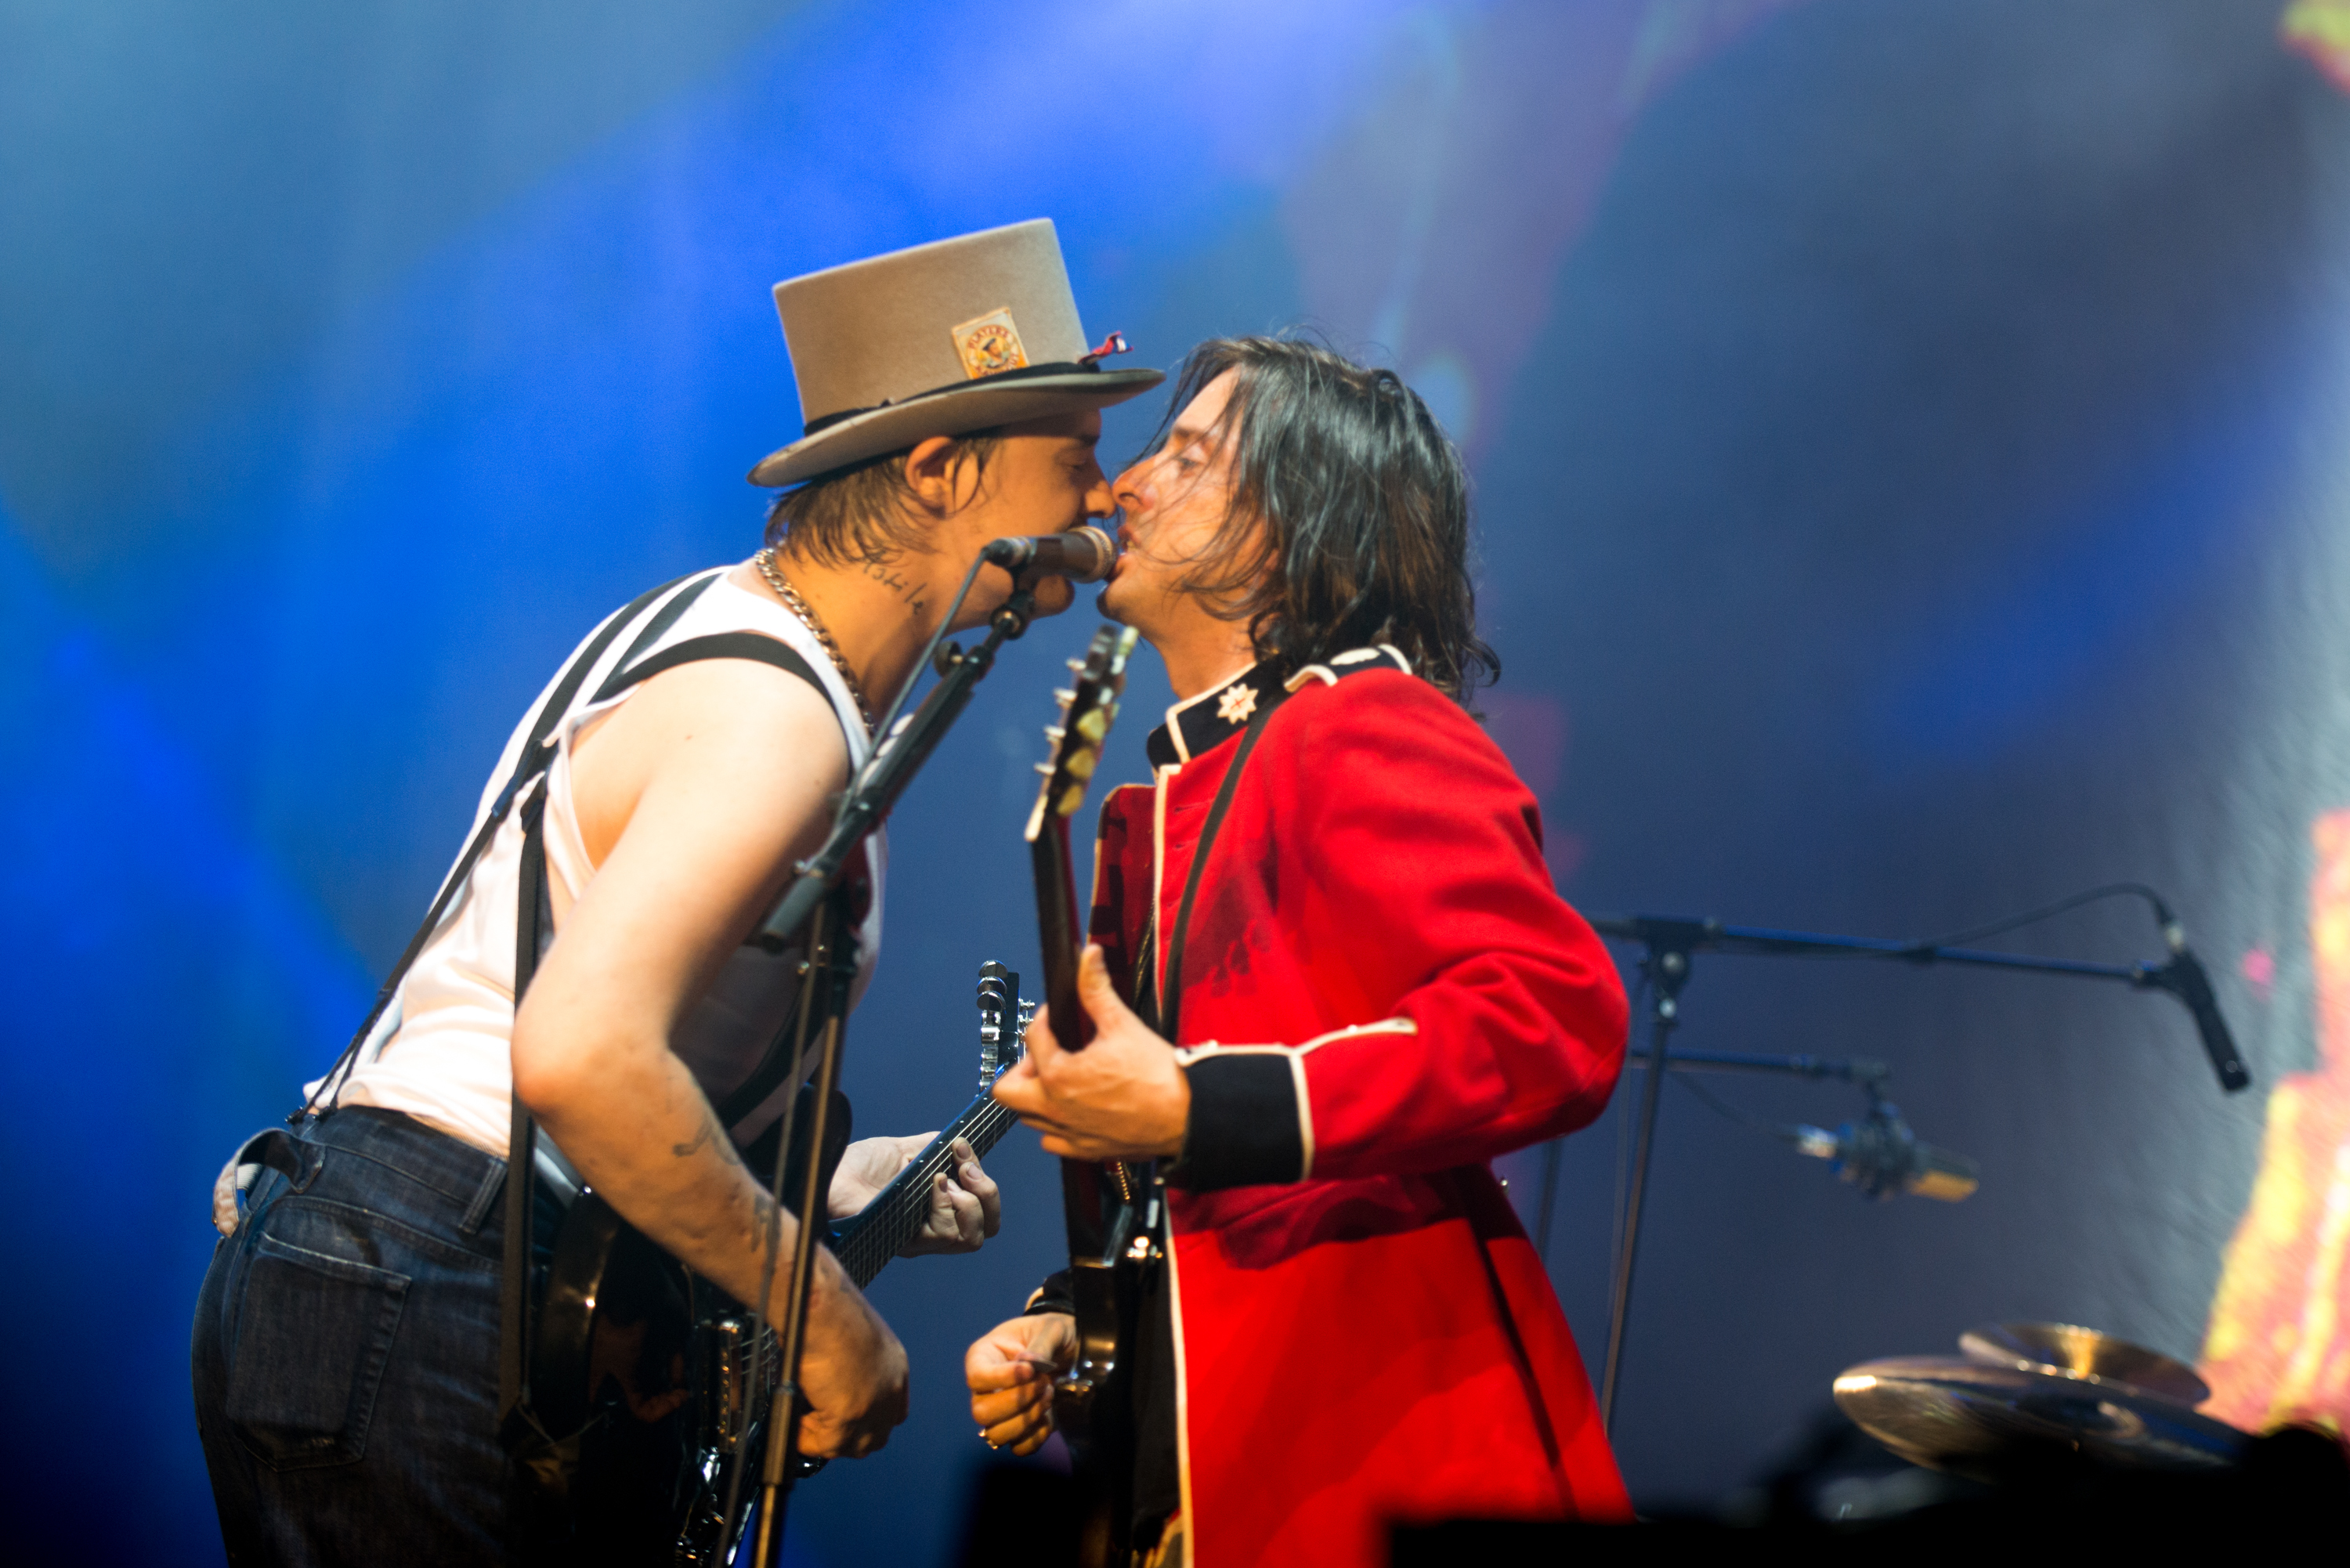 BENICASIM, SPAIN - JULY 19:  Peter Doherty and Carl Barat of The Libertines on Day 3 of Benicassim Music Festival on July 19,